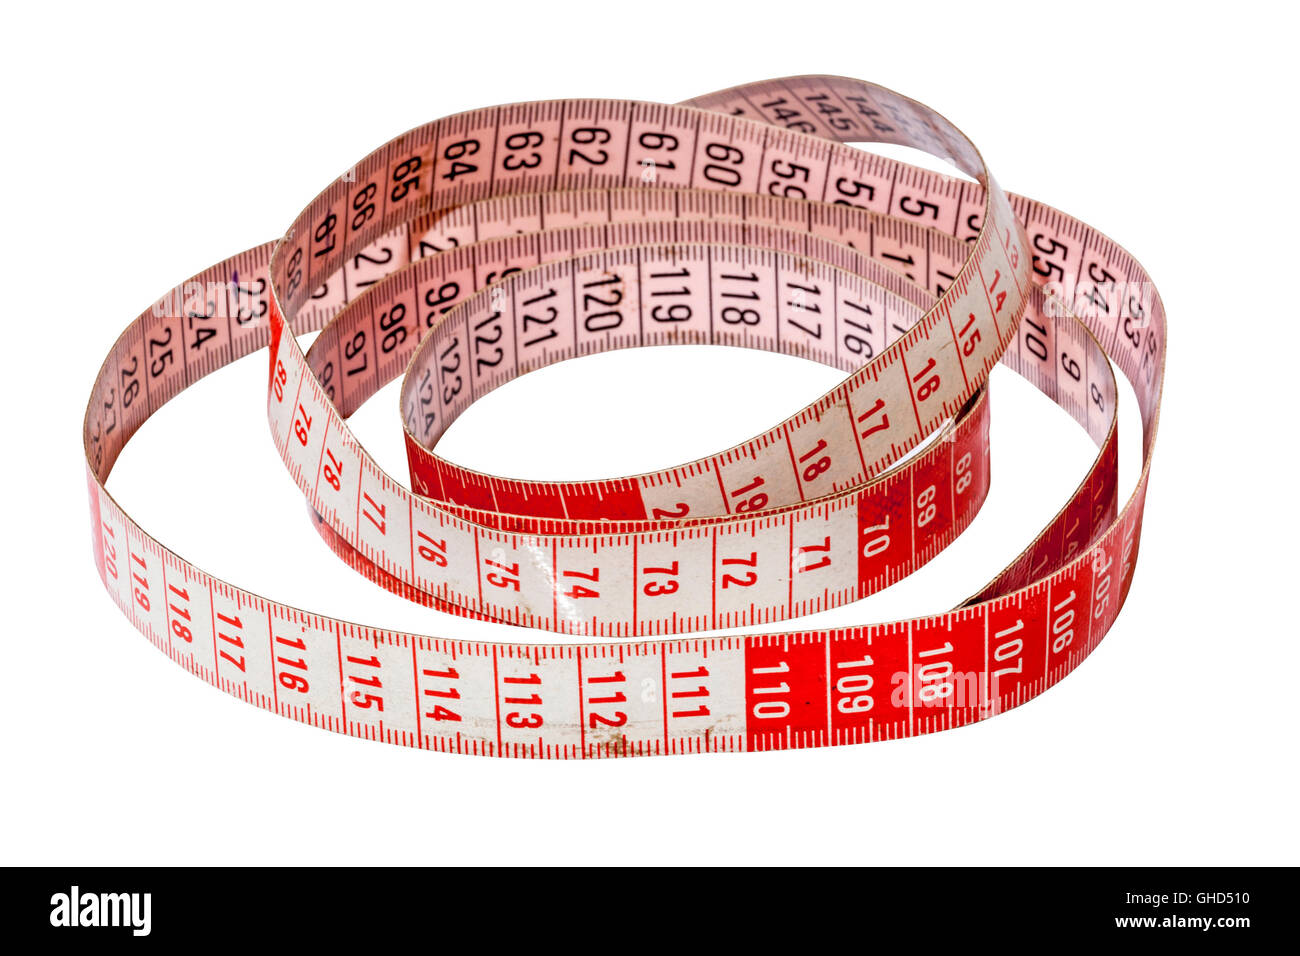 Studio shot isolated coiled red and white dressmaking tape measure marked in centimeters on white - Stock Image